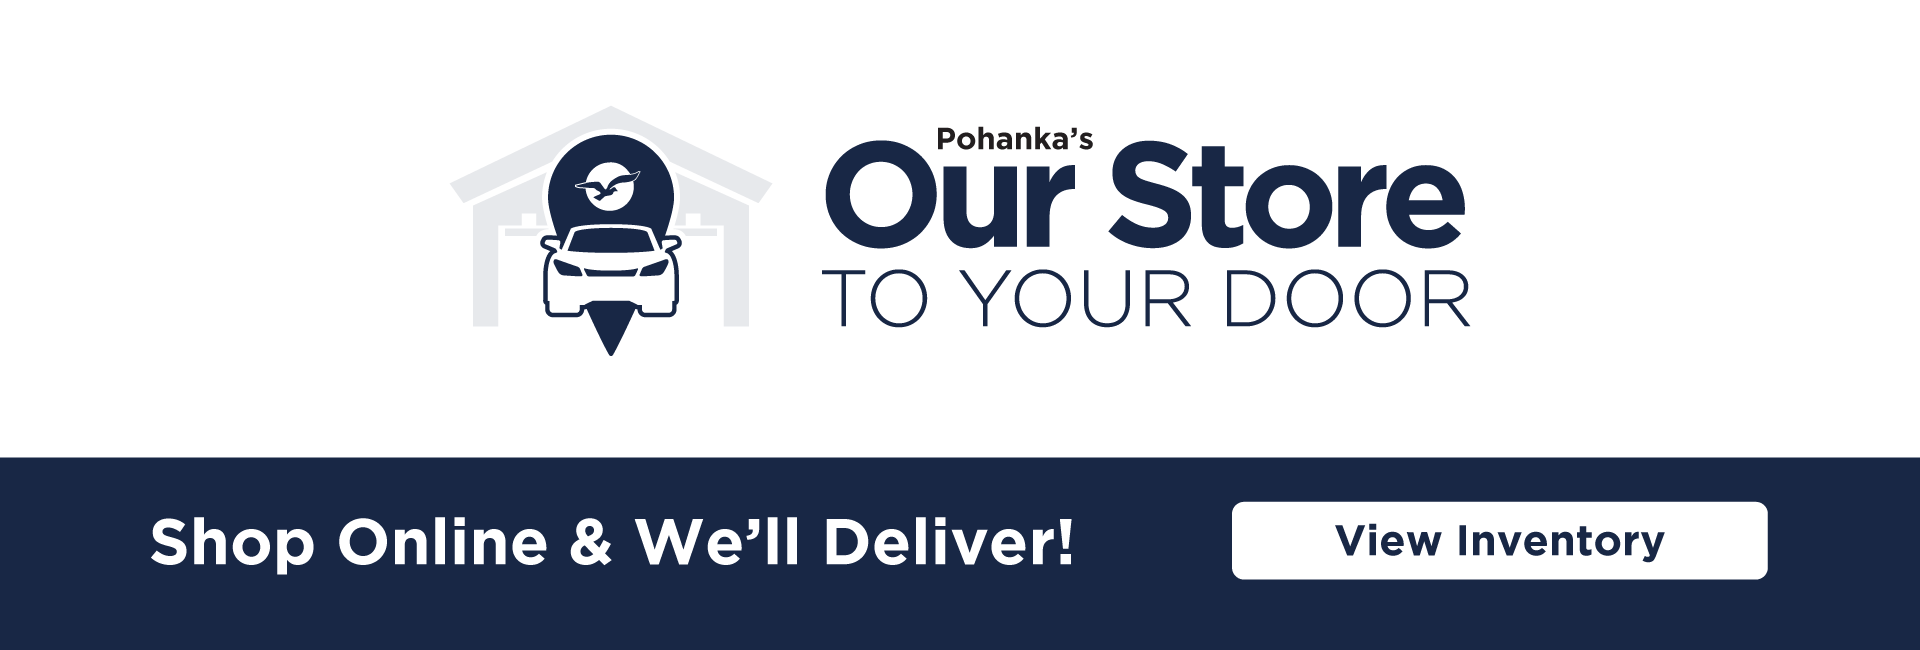 Pohanka Our Store to Your Door